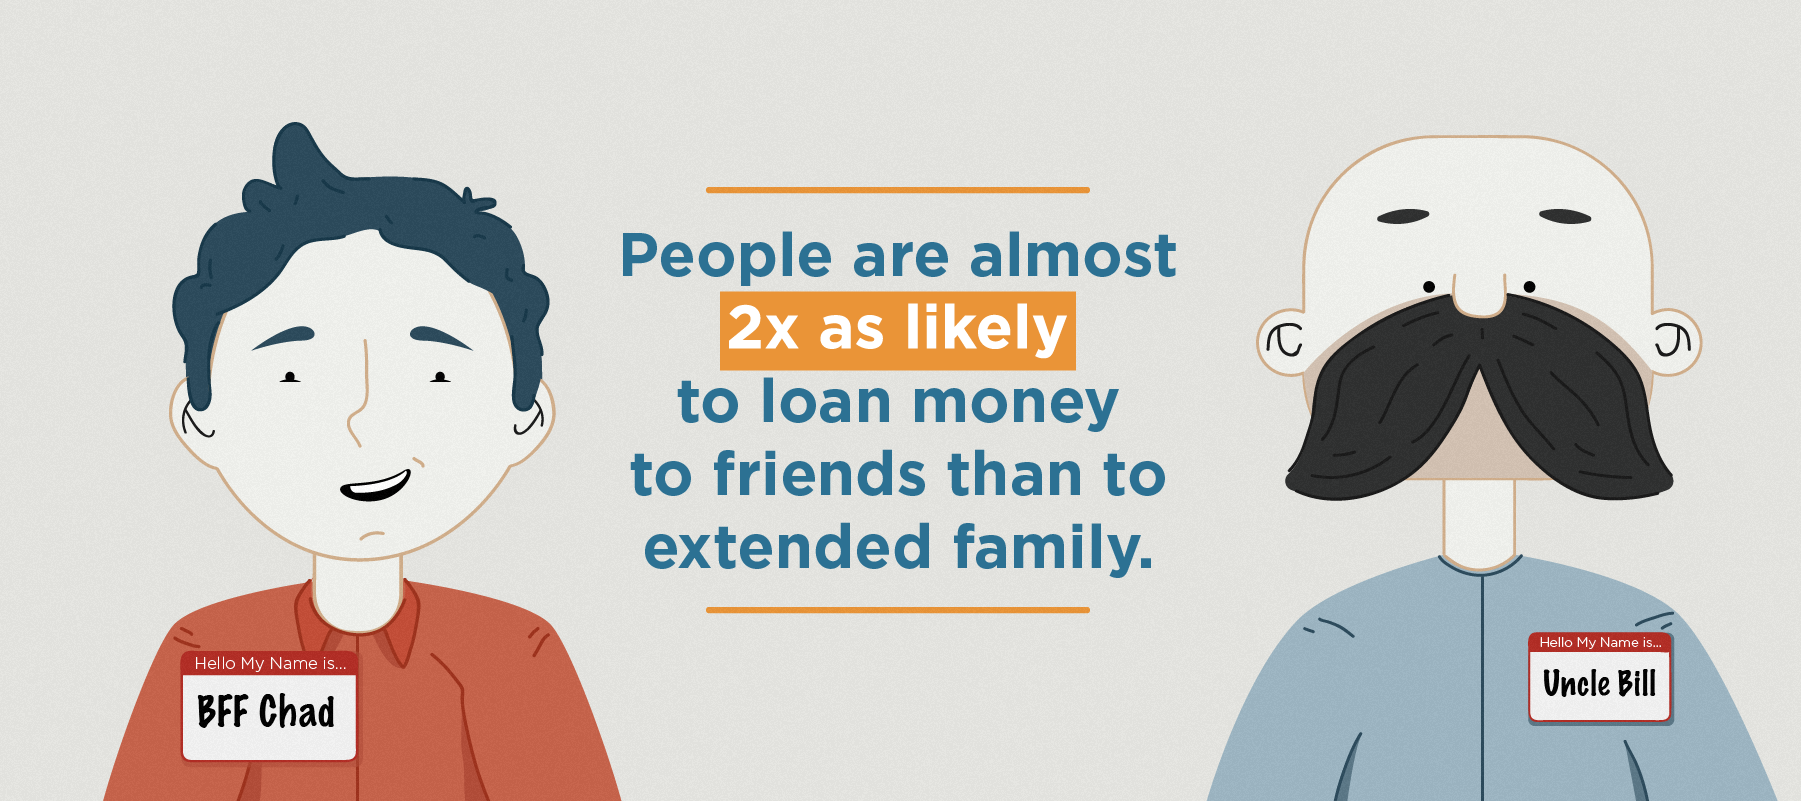 people are 2x as likely to loan money to friends than to extended family